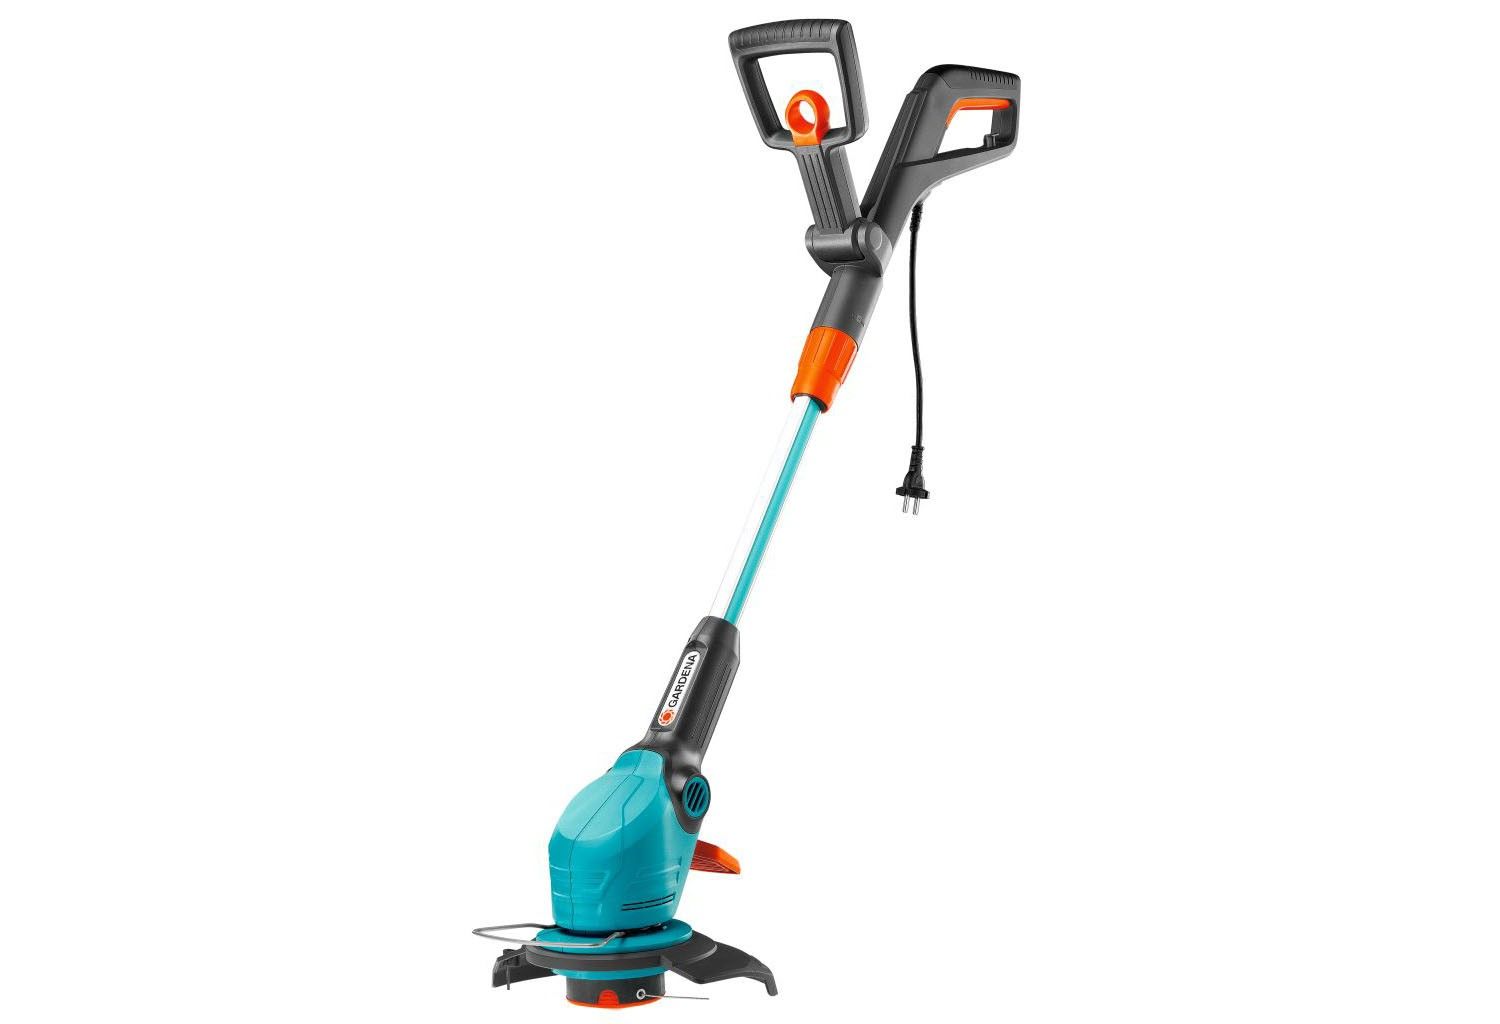 Gardena 400 Electric Trimmer Gardena Easycut 400 25